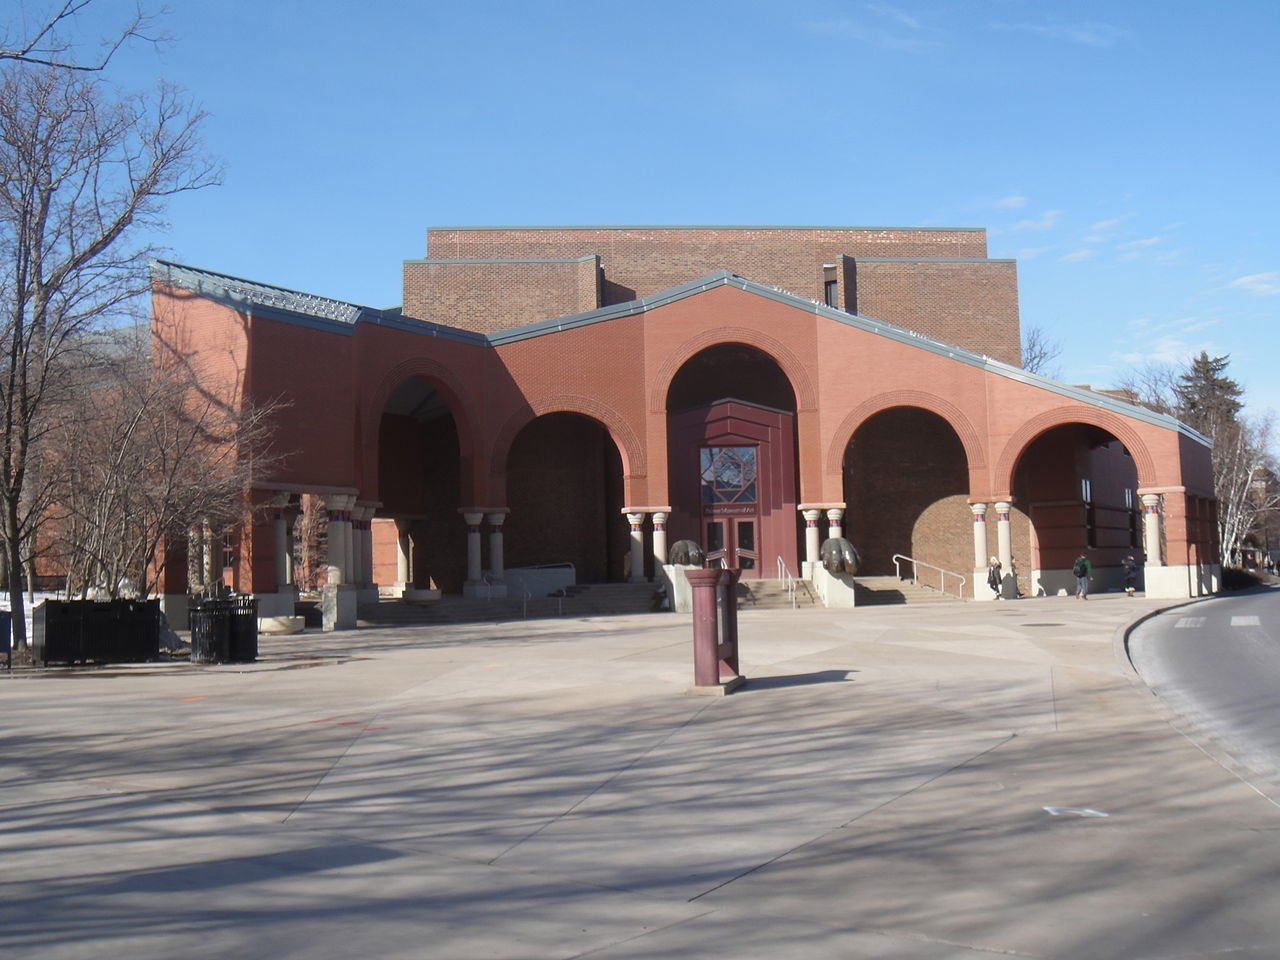 The Palmer Museum of Art features an impressive collection of art from around the world.